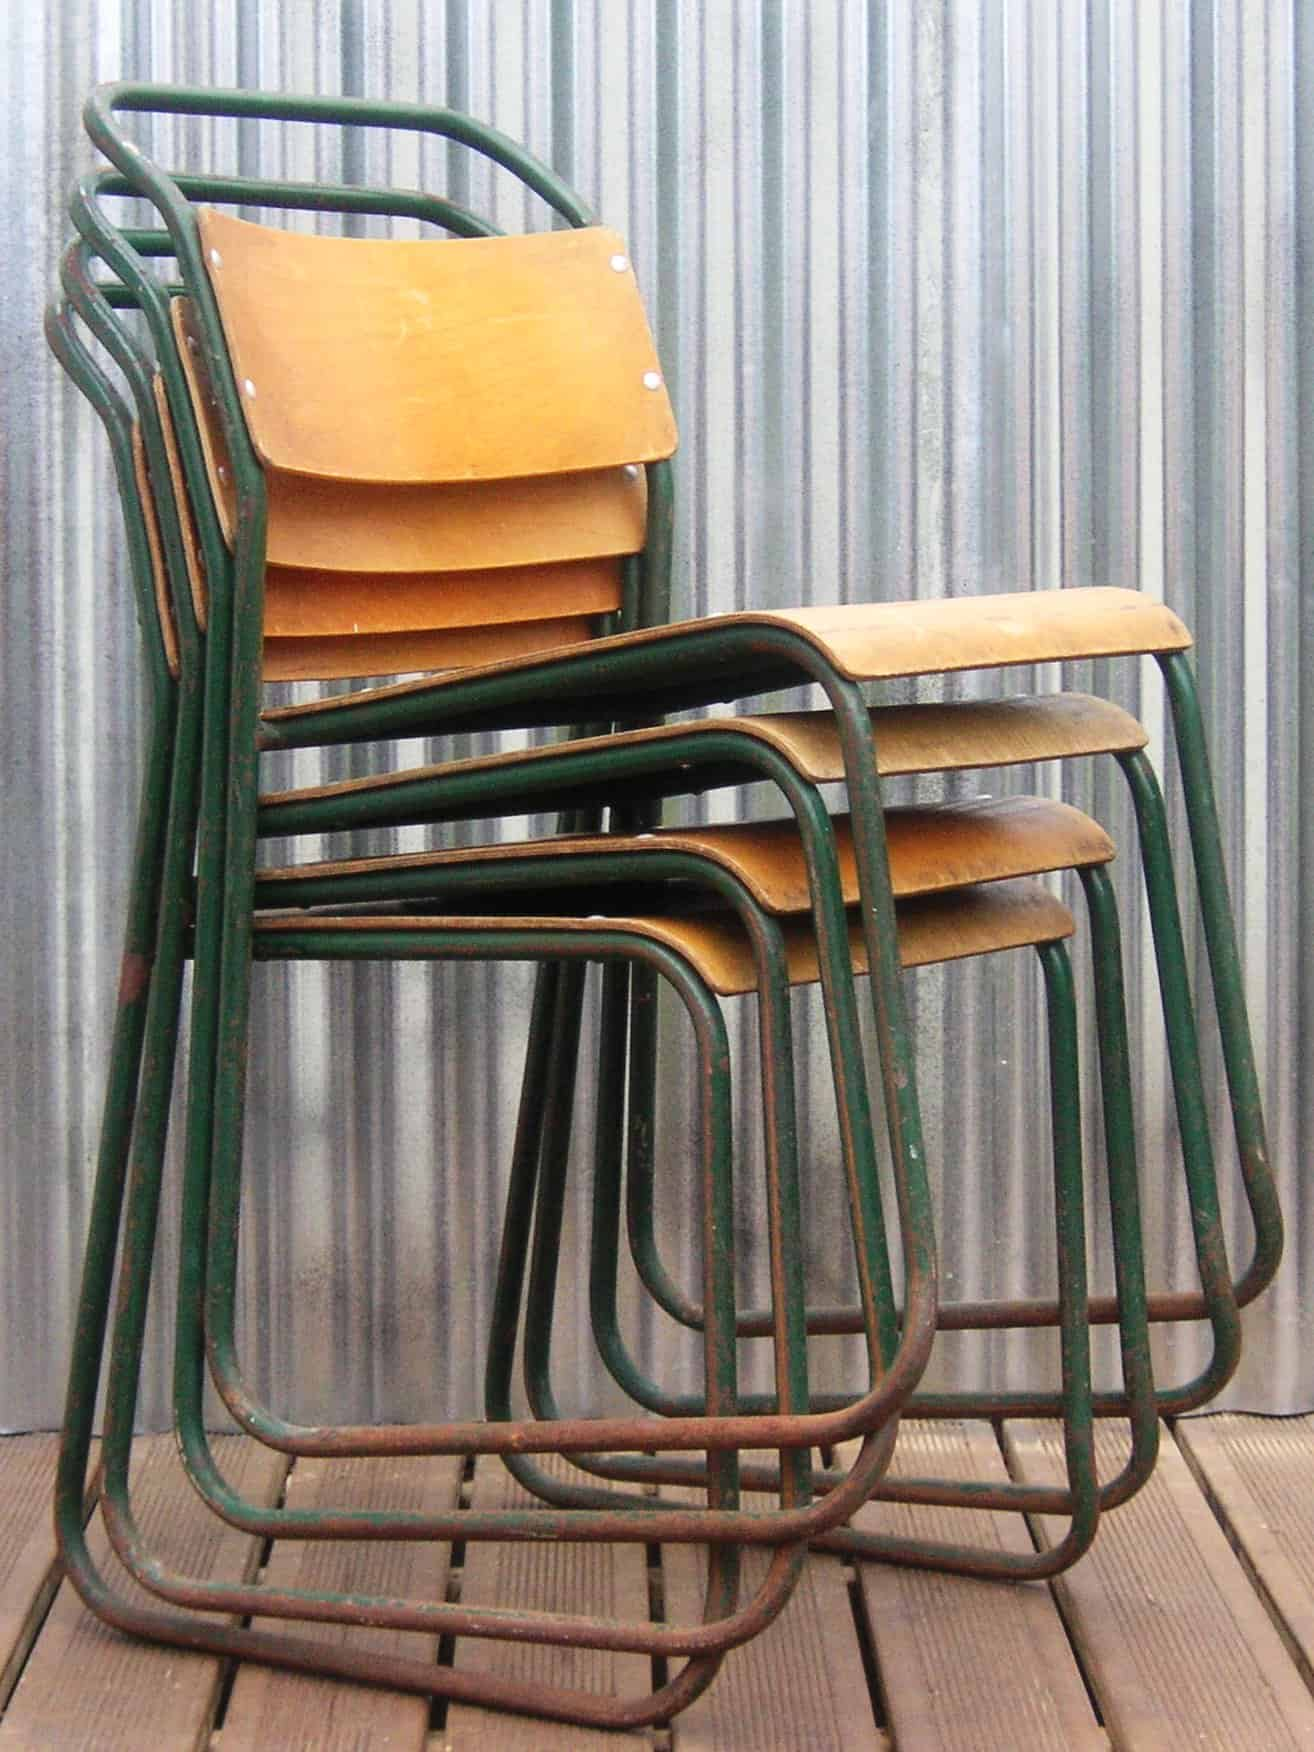 Vintage Tubular Frame Chairs from Bubbledrum